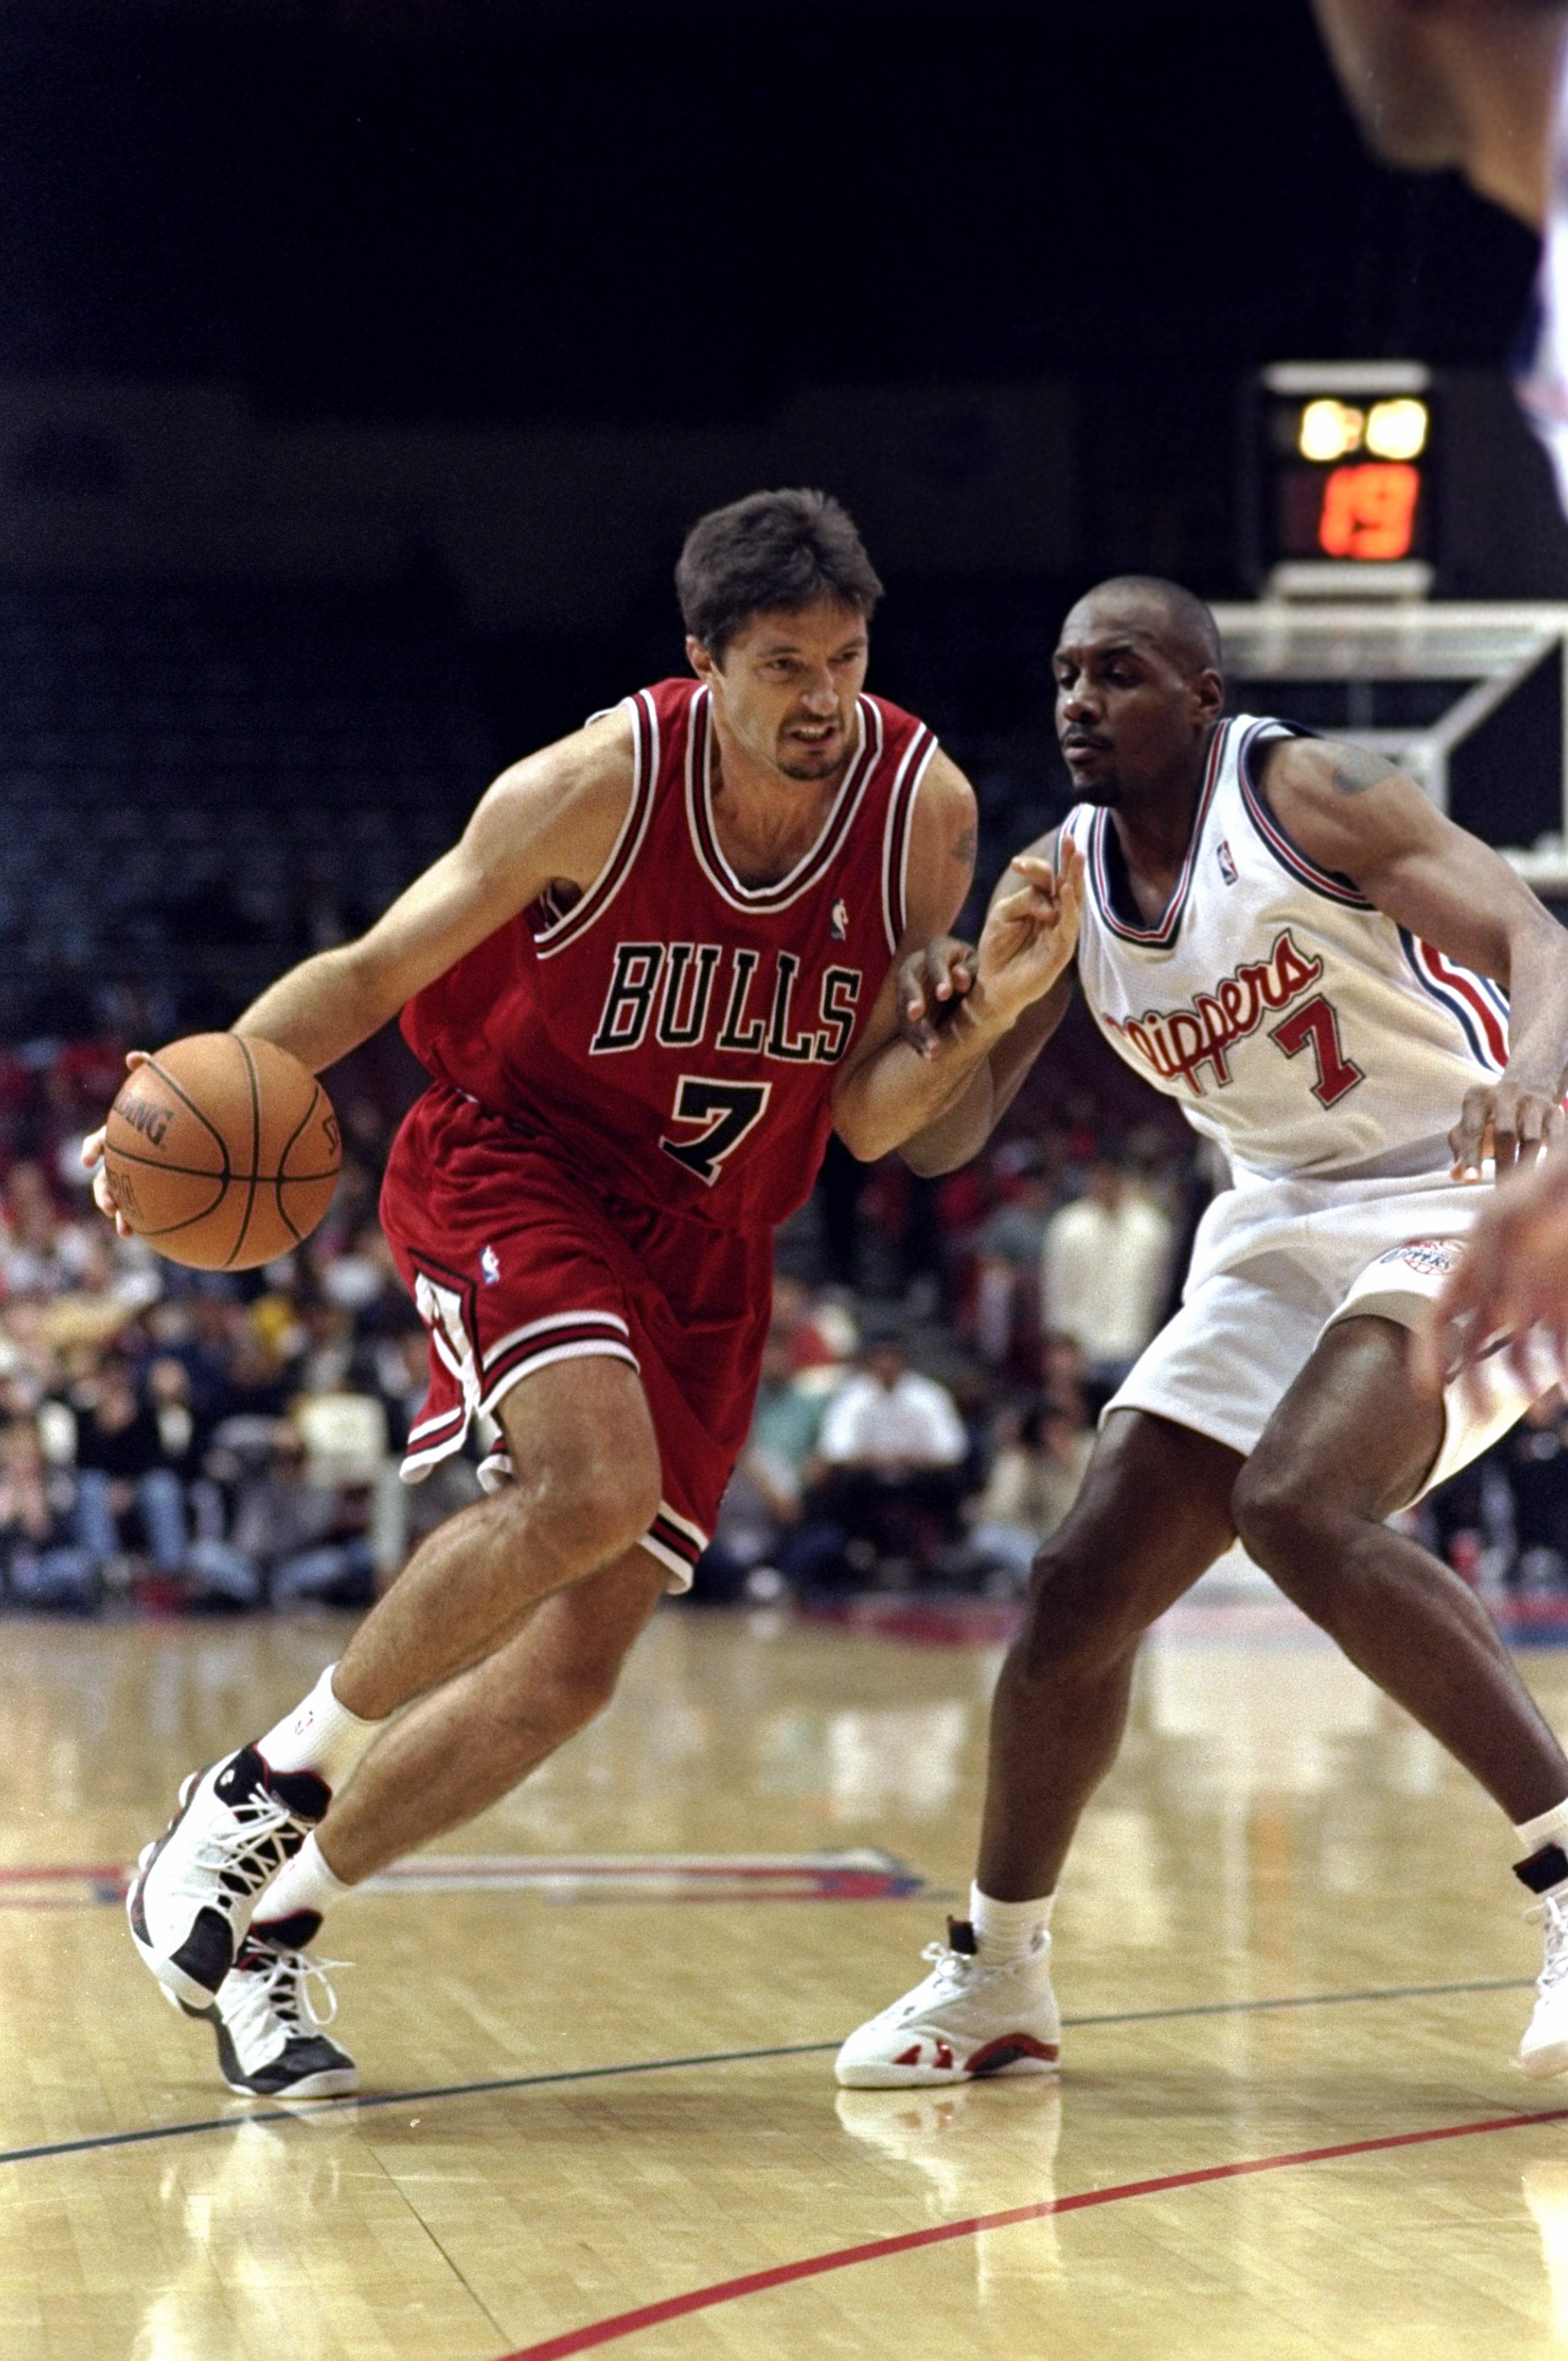 7 Feb 1999: Toni Kukoc #7 of the Chicago Bulls dribbles during the game against the Los Angeles Clippers at the LA Sports Arena in Los Angeles, California. The Bulls defeated the Clippers 89-84.  Mandatory Credit: Aubrey Washington  /Allsport